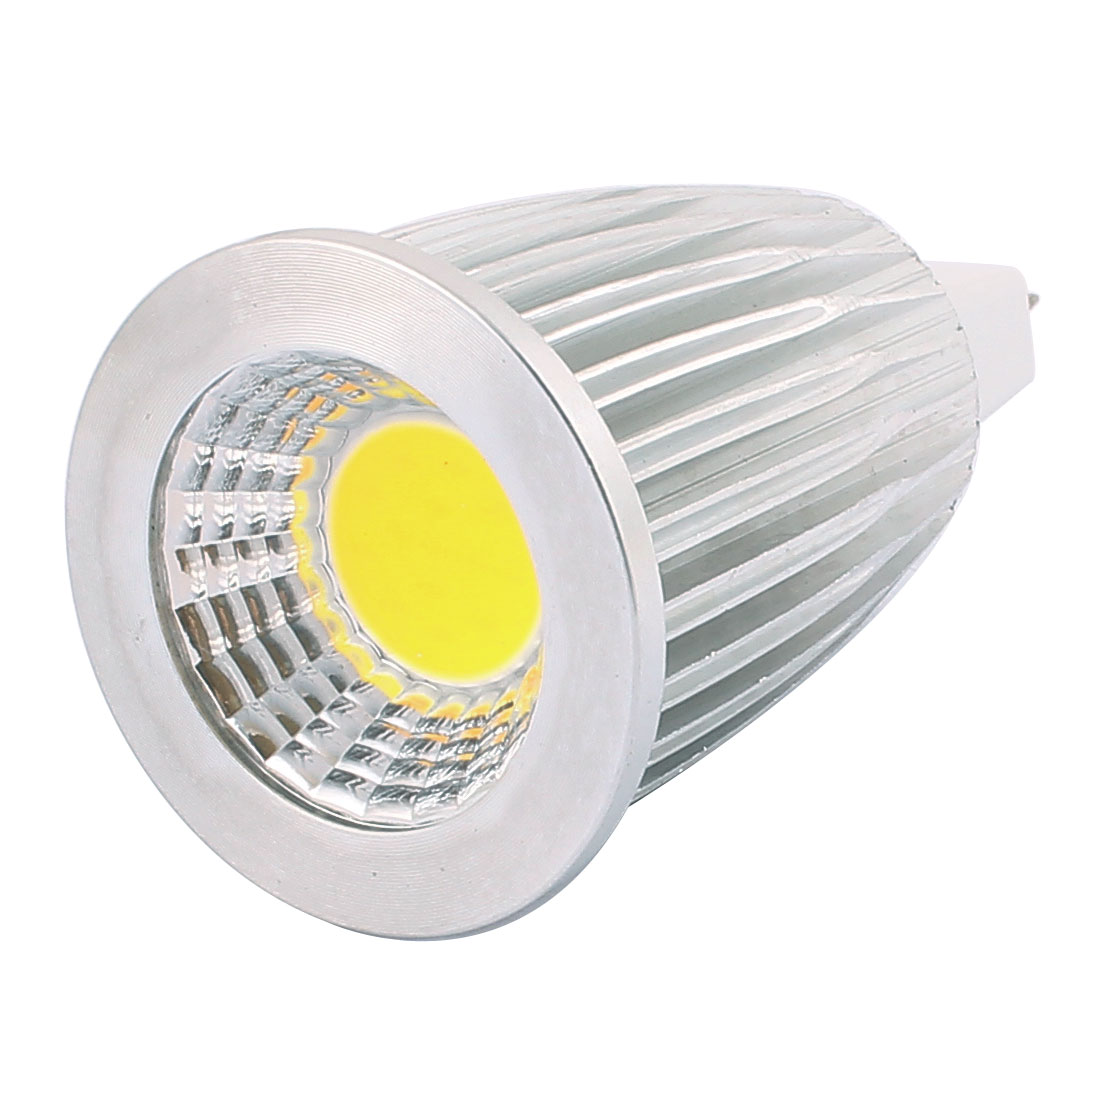 DC12V 7W MR16 COB LED Spotlight Lamp Bulb Energy Saving Downlight Pure White